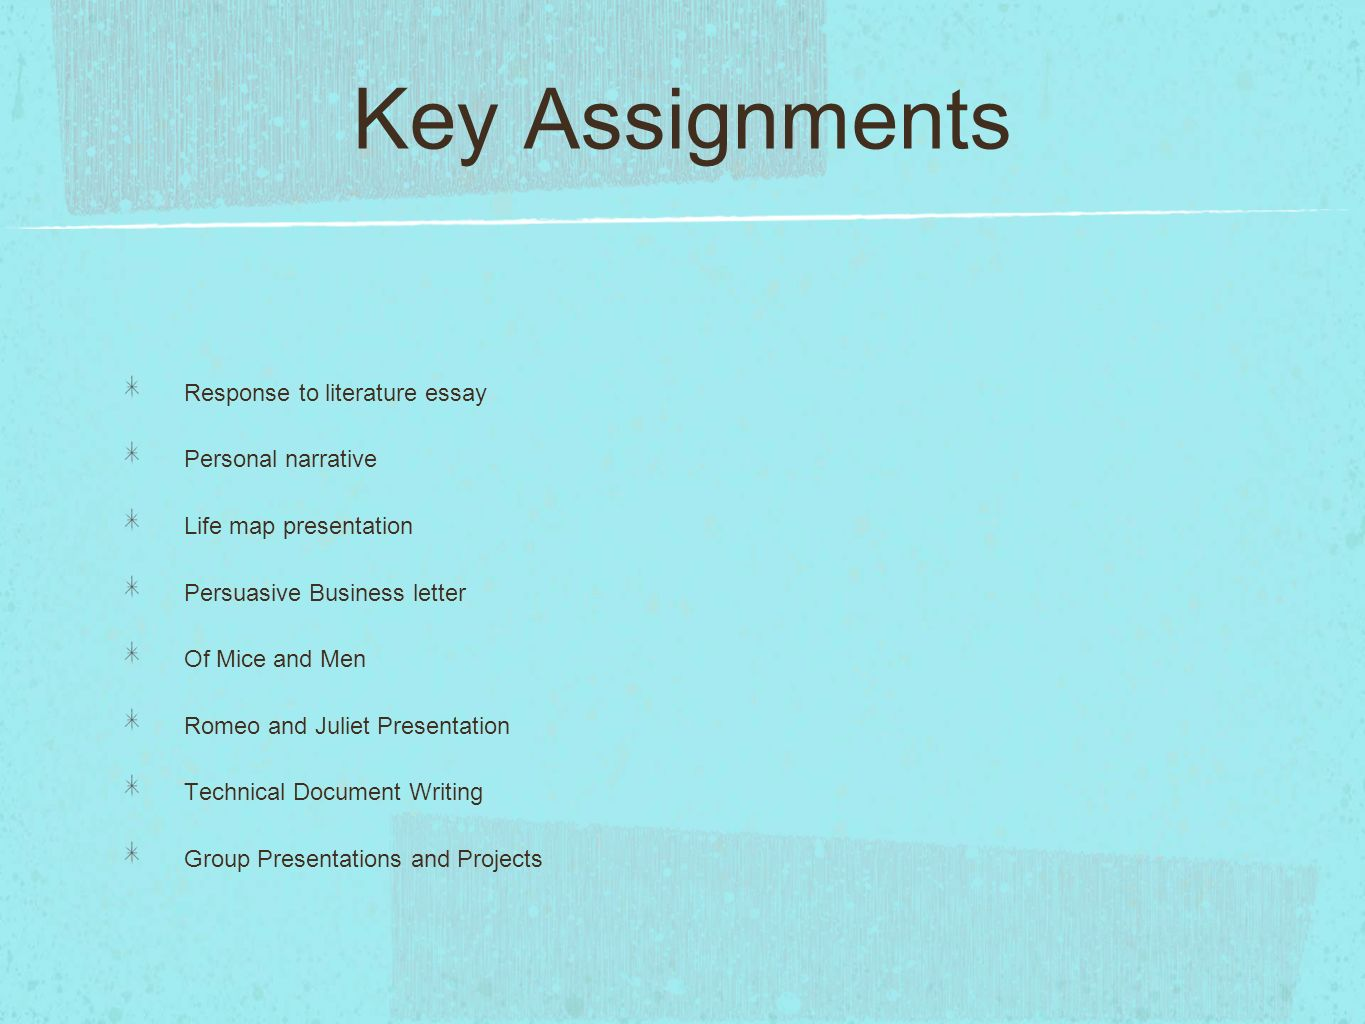 english placement test essay prompts Prompts are free of technical or specific literary references and  in the elements of on‐demand essay writing in english, this writing sample receives a score of  writeplacer esl guide with sample essays 8 may 2010.